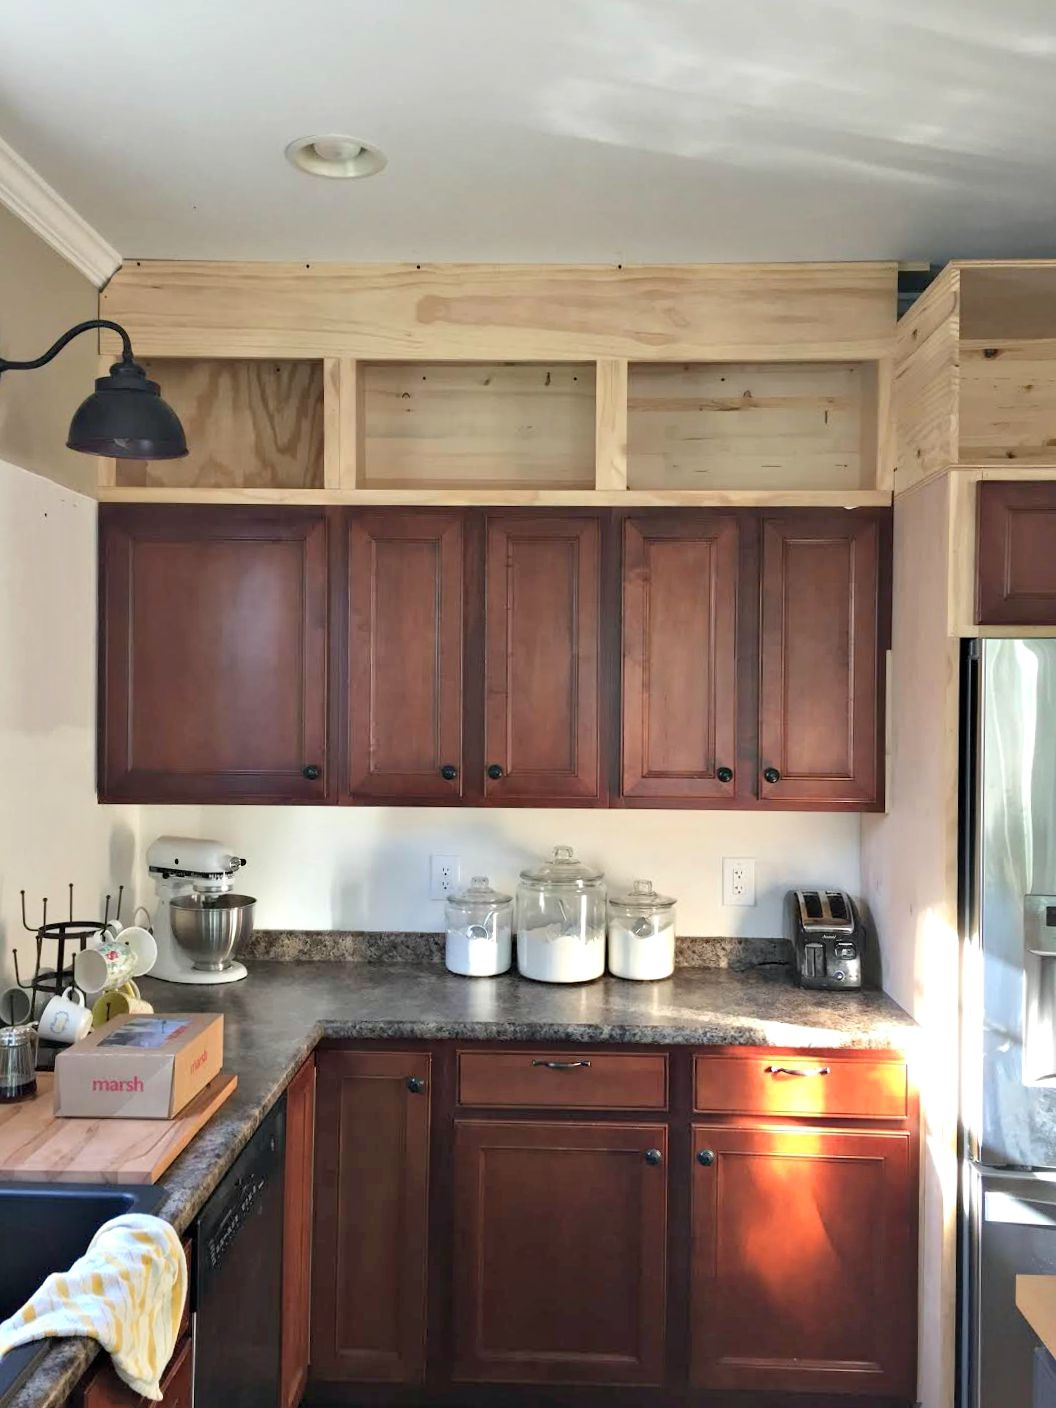 Permalink to Adding Upper Cabinets To Existing Kitchen